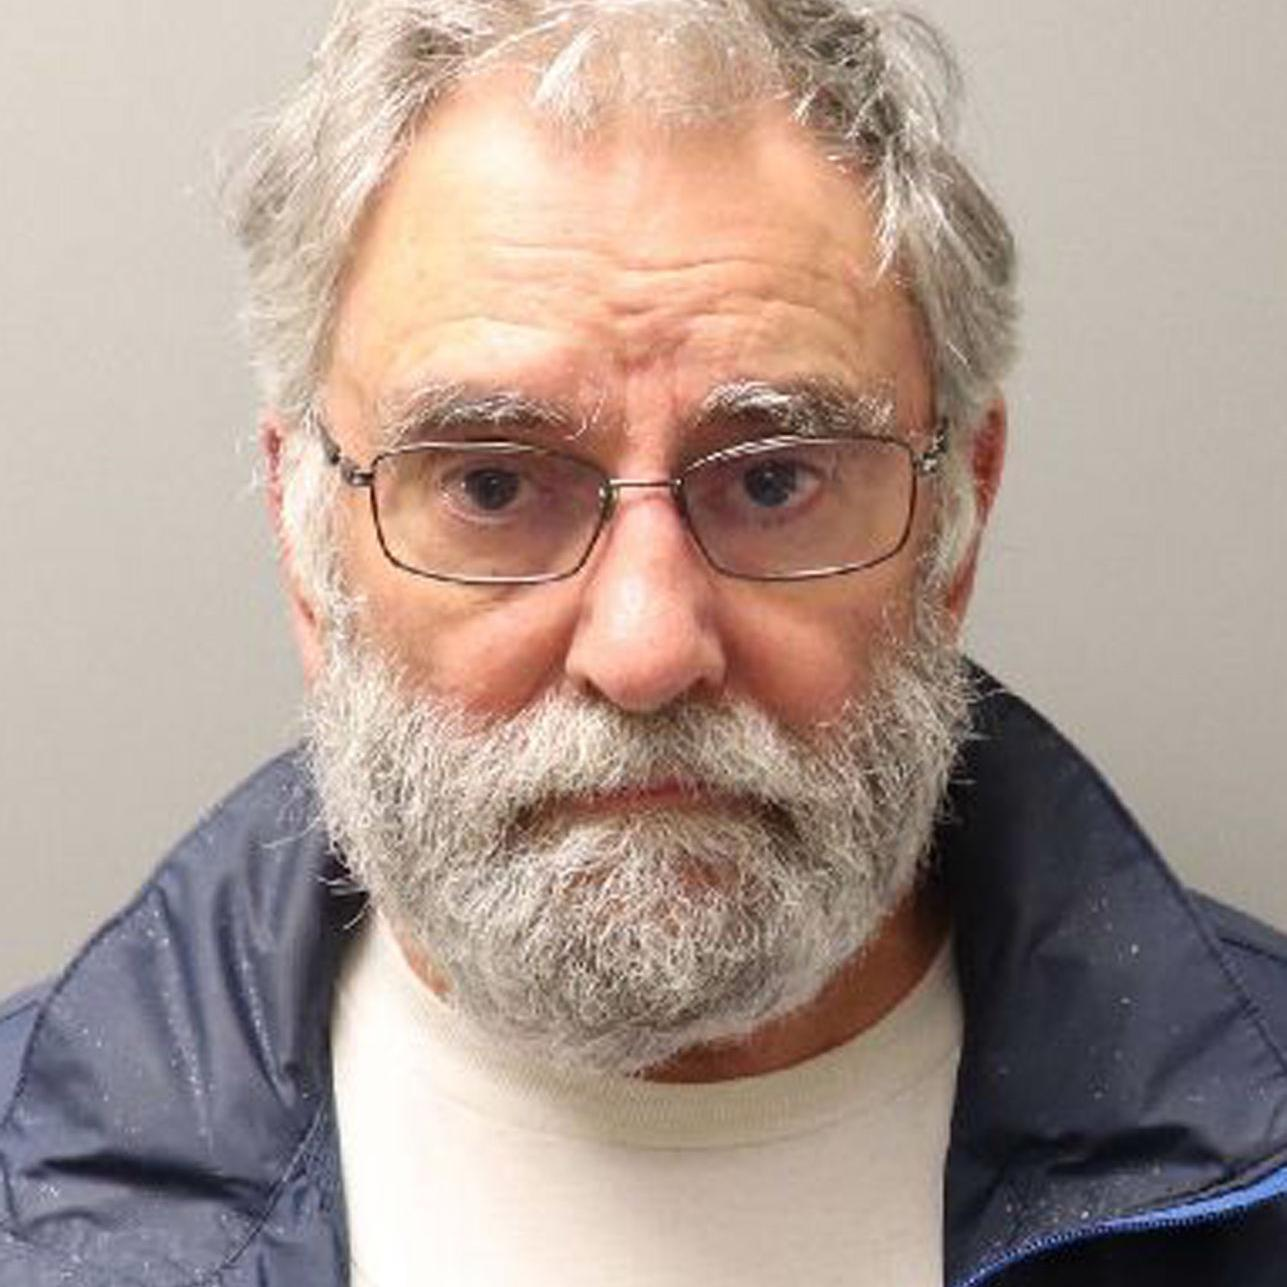 Former Wiregrass doctor arrested by Troy Police on multiple sex